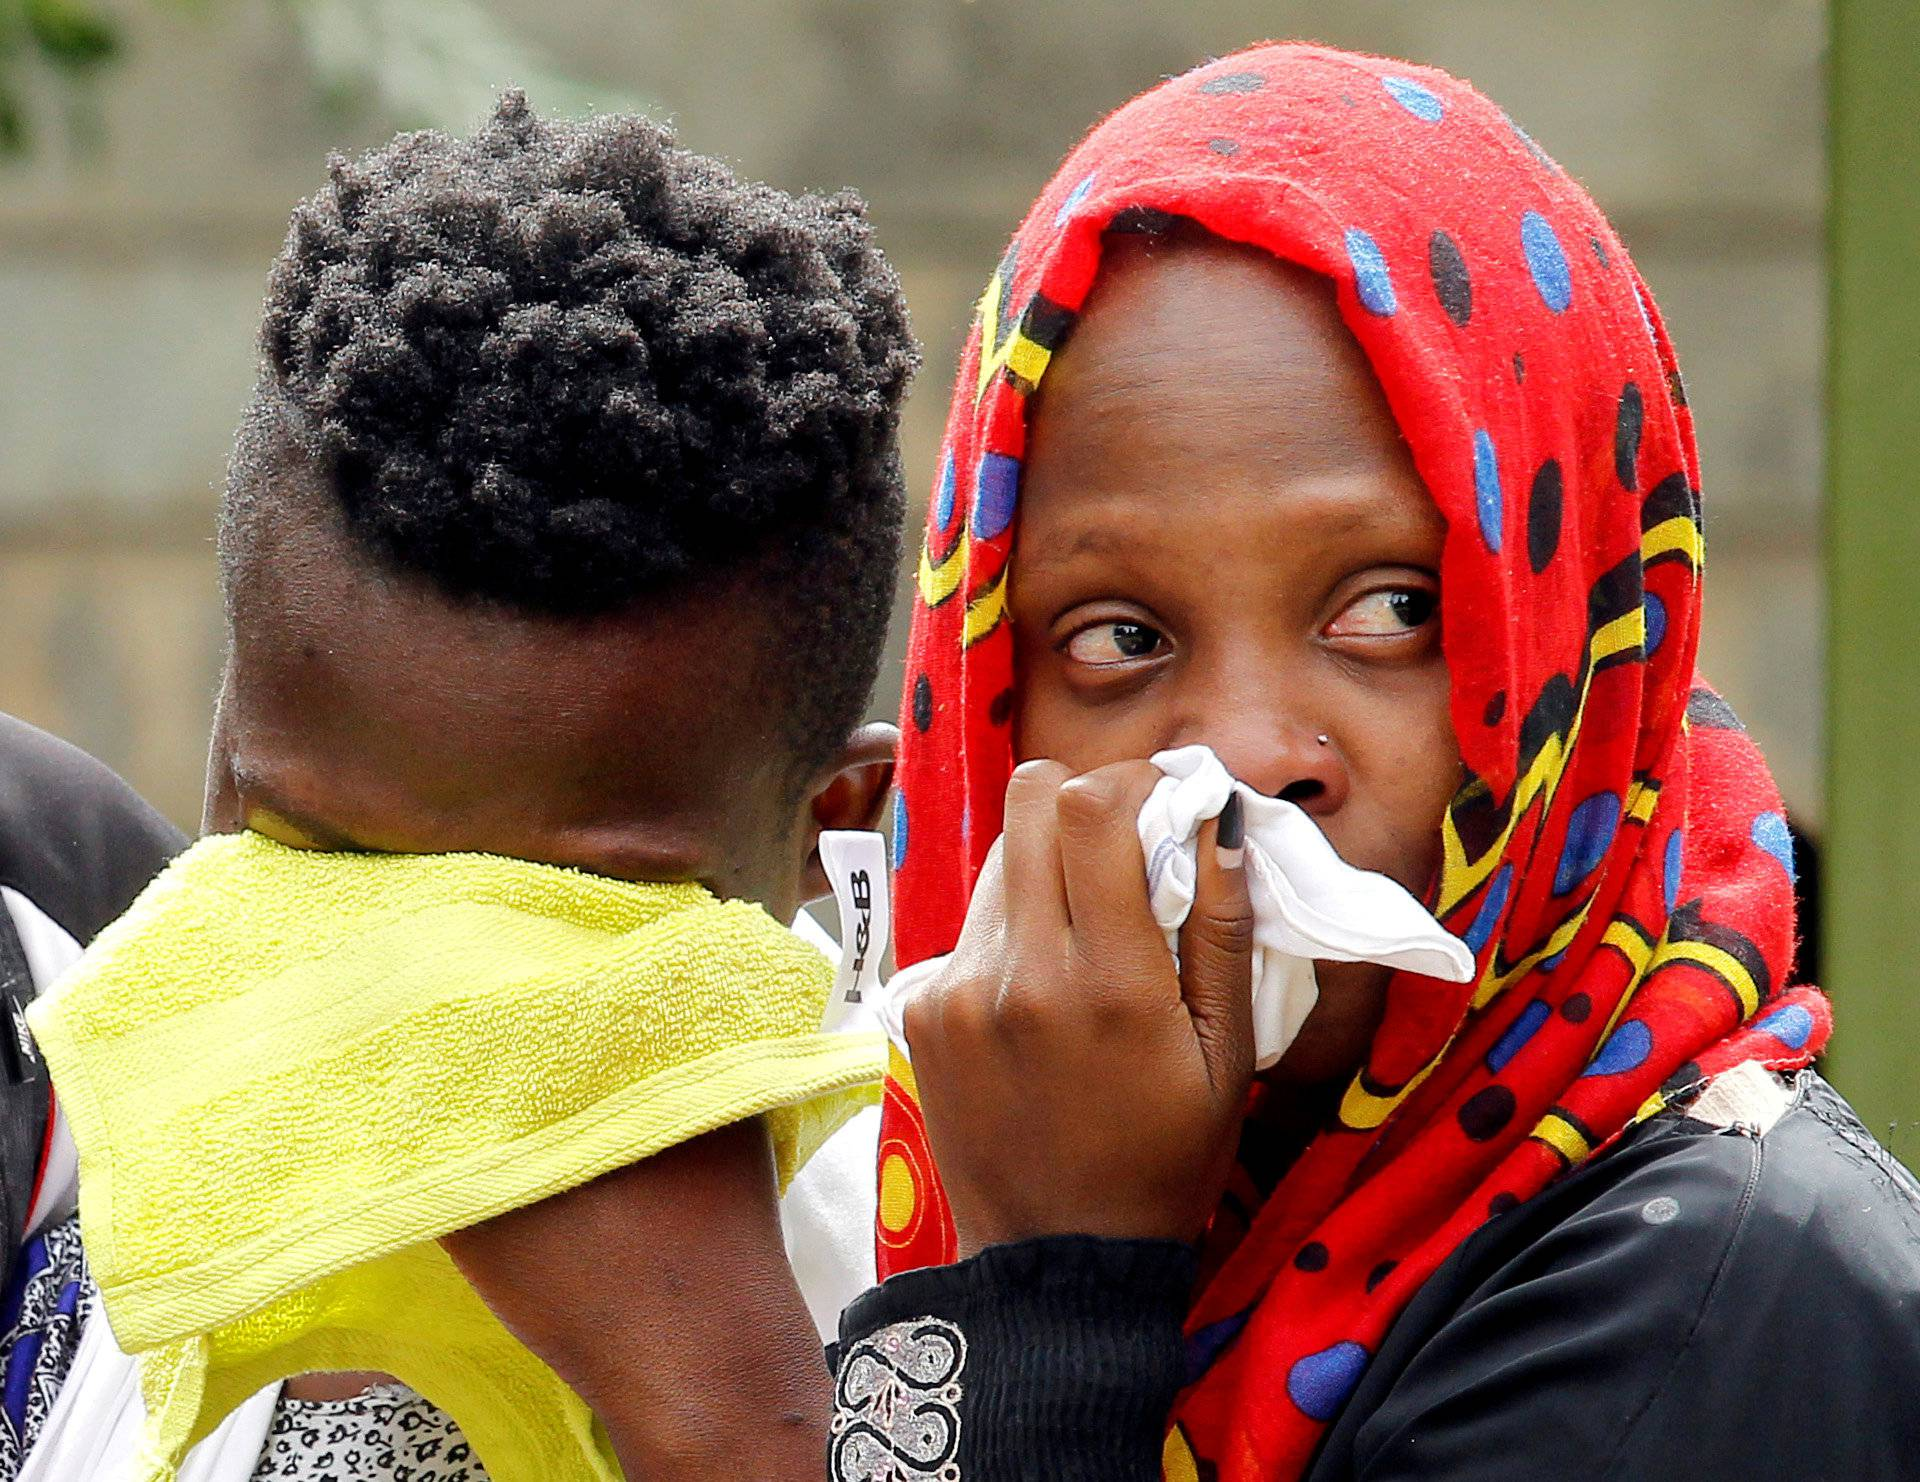 Relatives of a person, who was killed in an attack on an upscale hotel compound, grieve in Nairobi